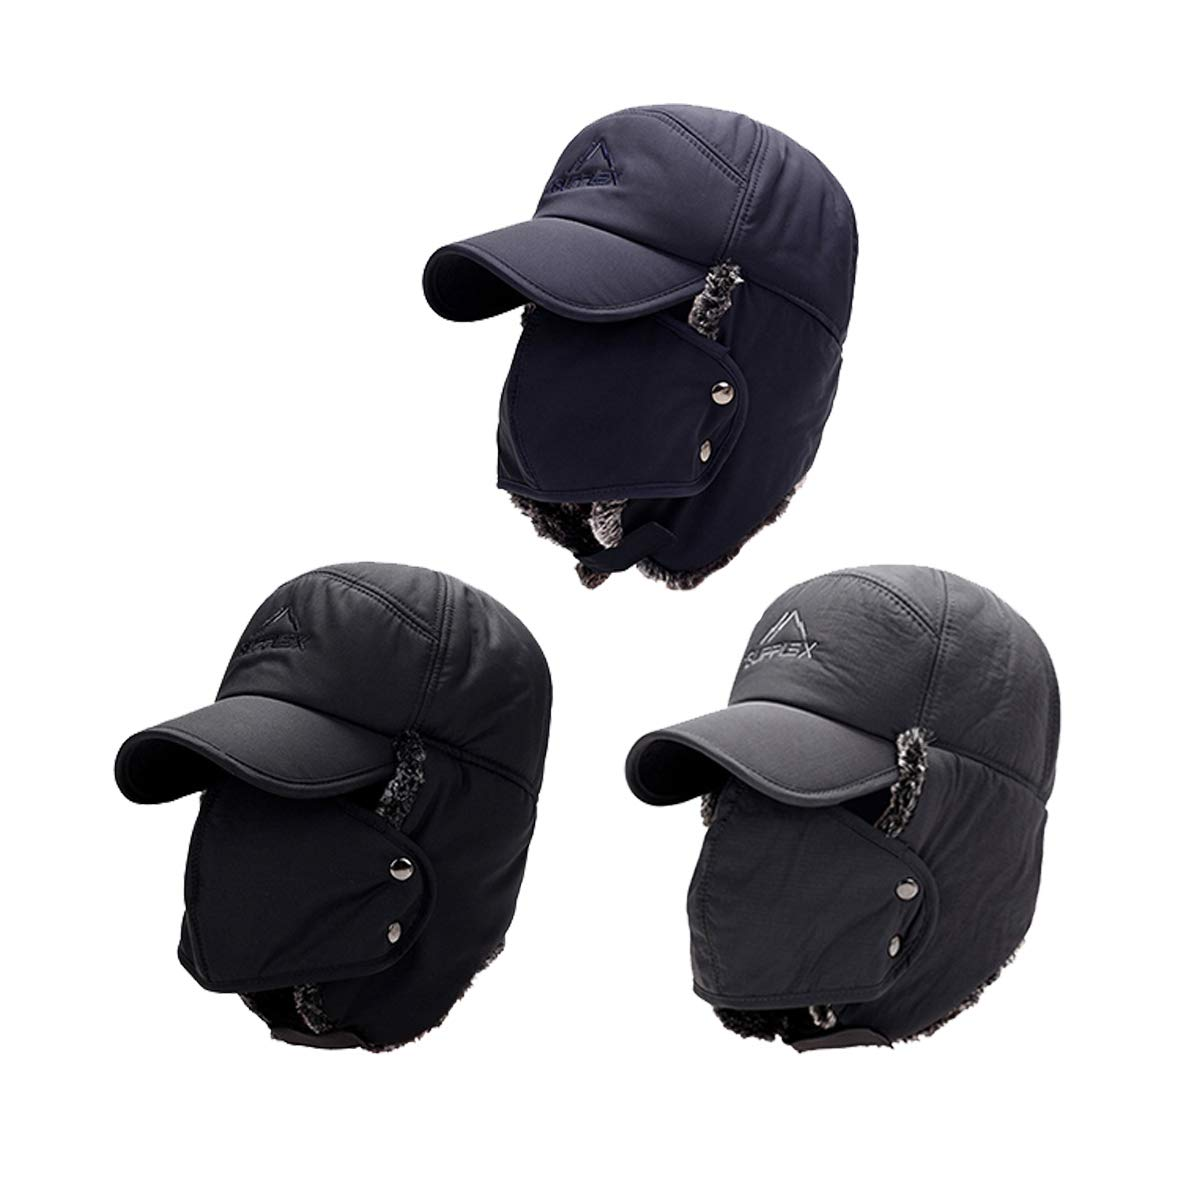 Mens Winter Warm Trapper Hat Ear Protection Bomber Cap Thicken Balaclava Warm Russian Hat with Mask Grey